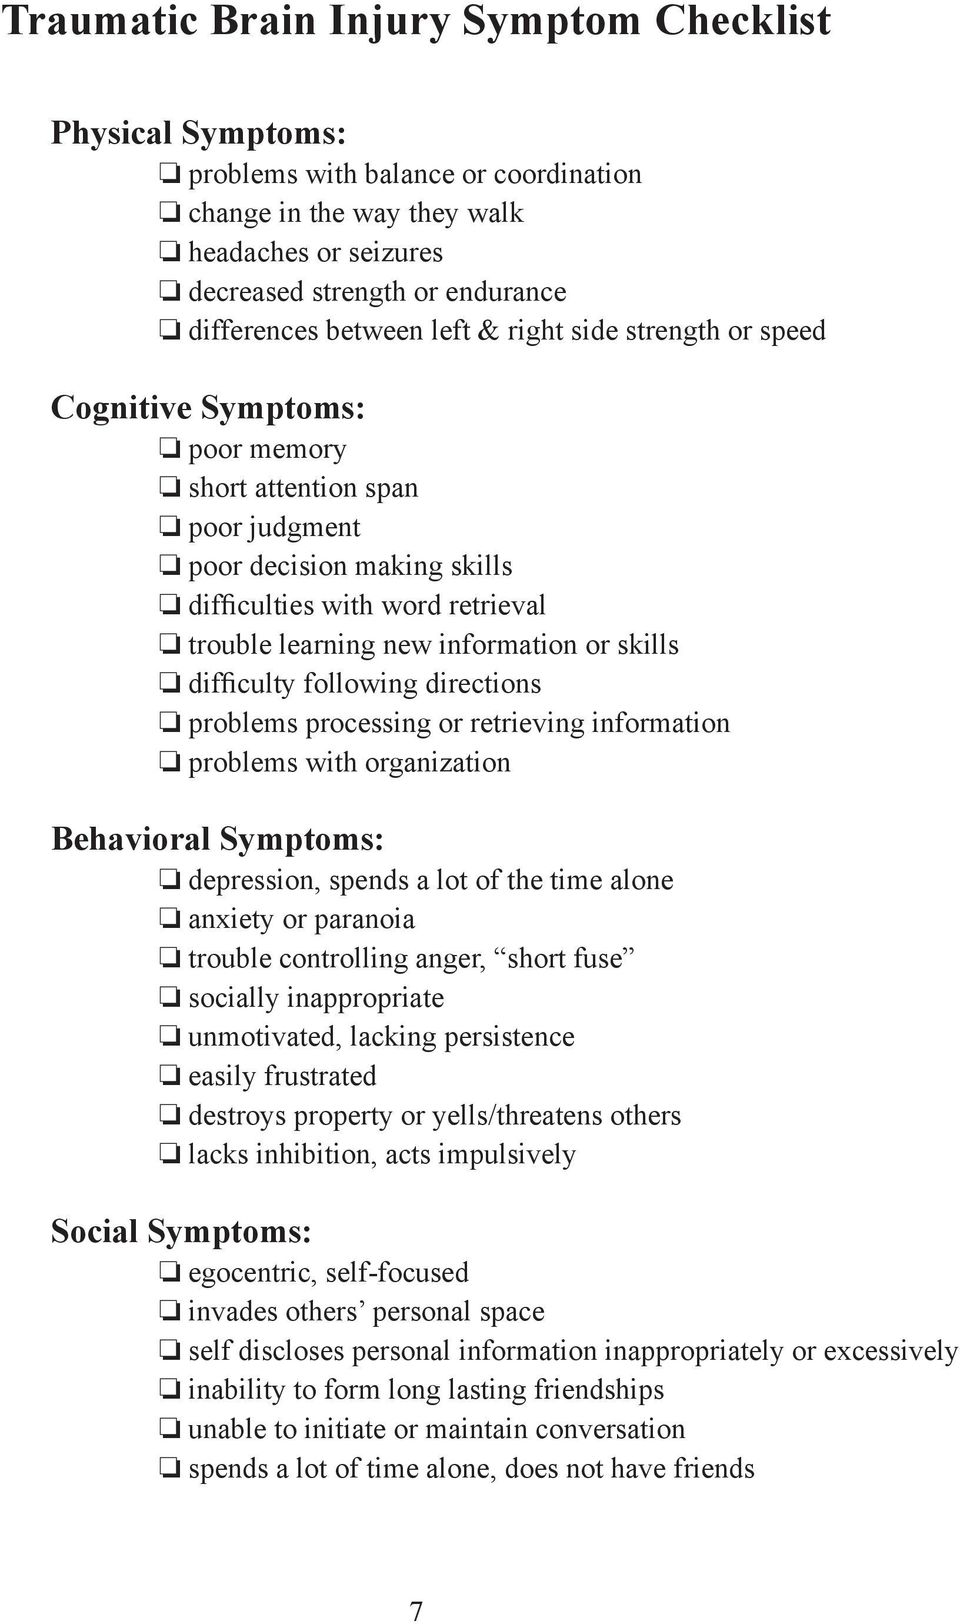 skills difficulty following directions problems processing or retrieving information problems with organization Behavioral Symptoms: depression, spends a lot of the time alone anxiety or paranoia